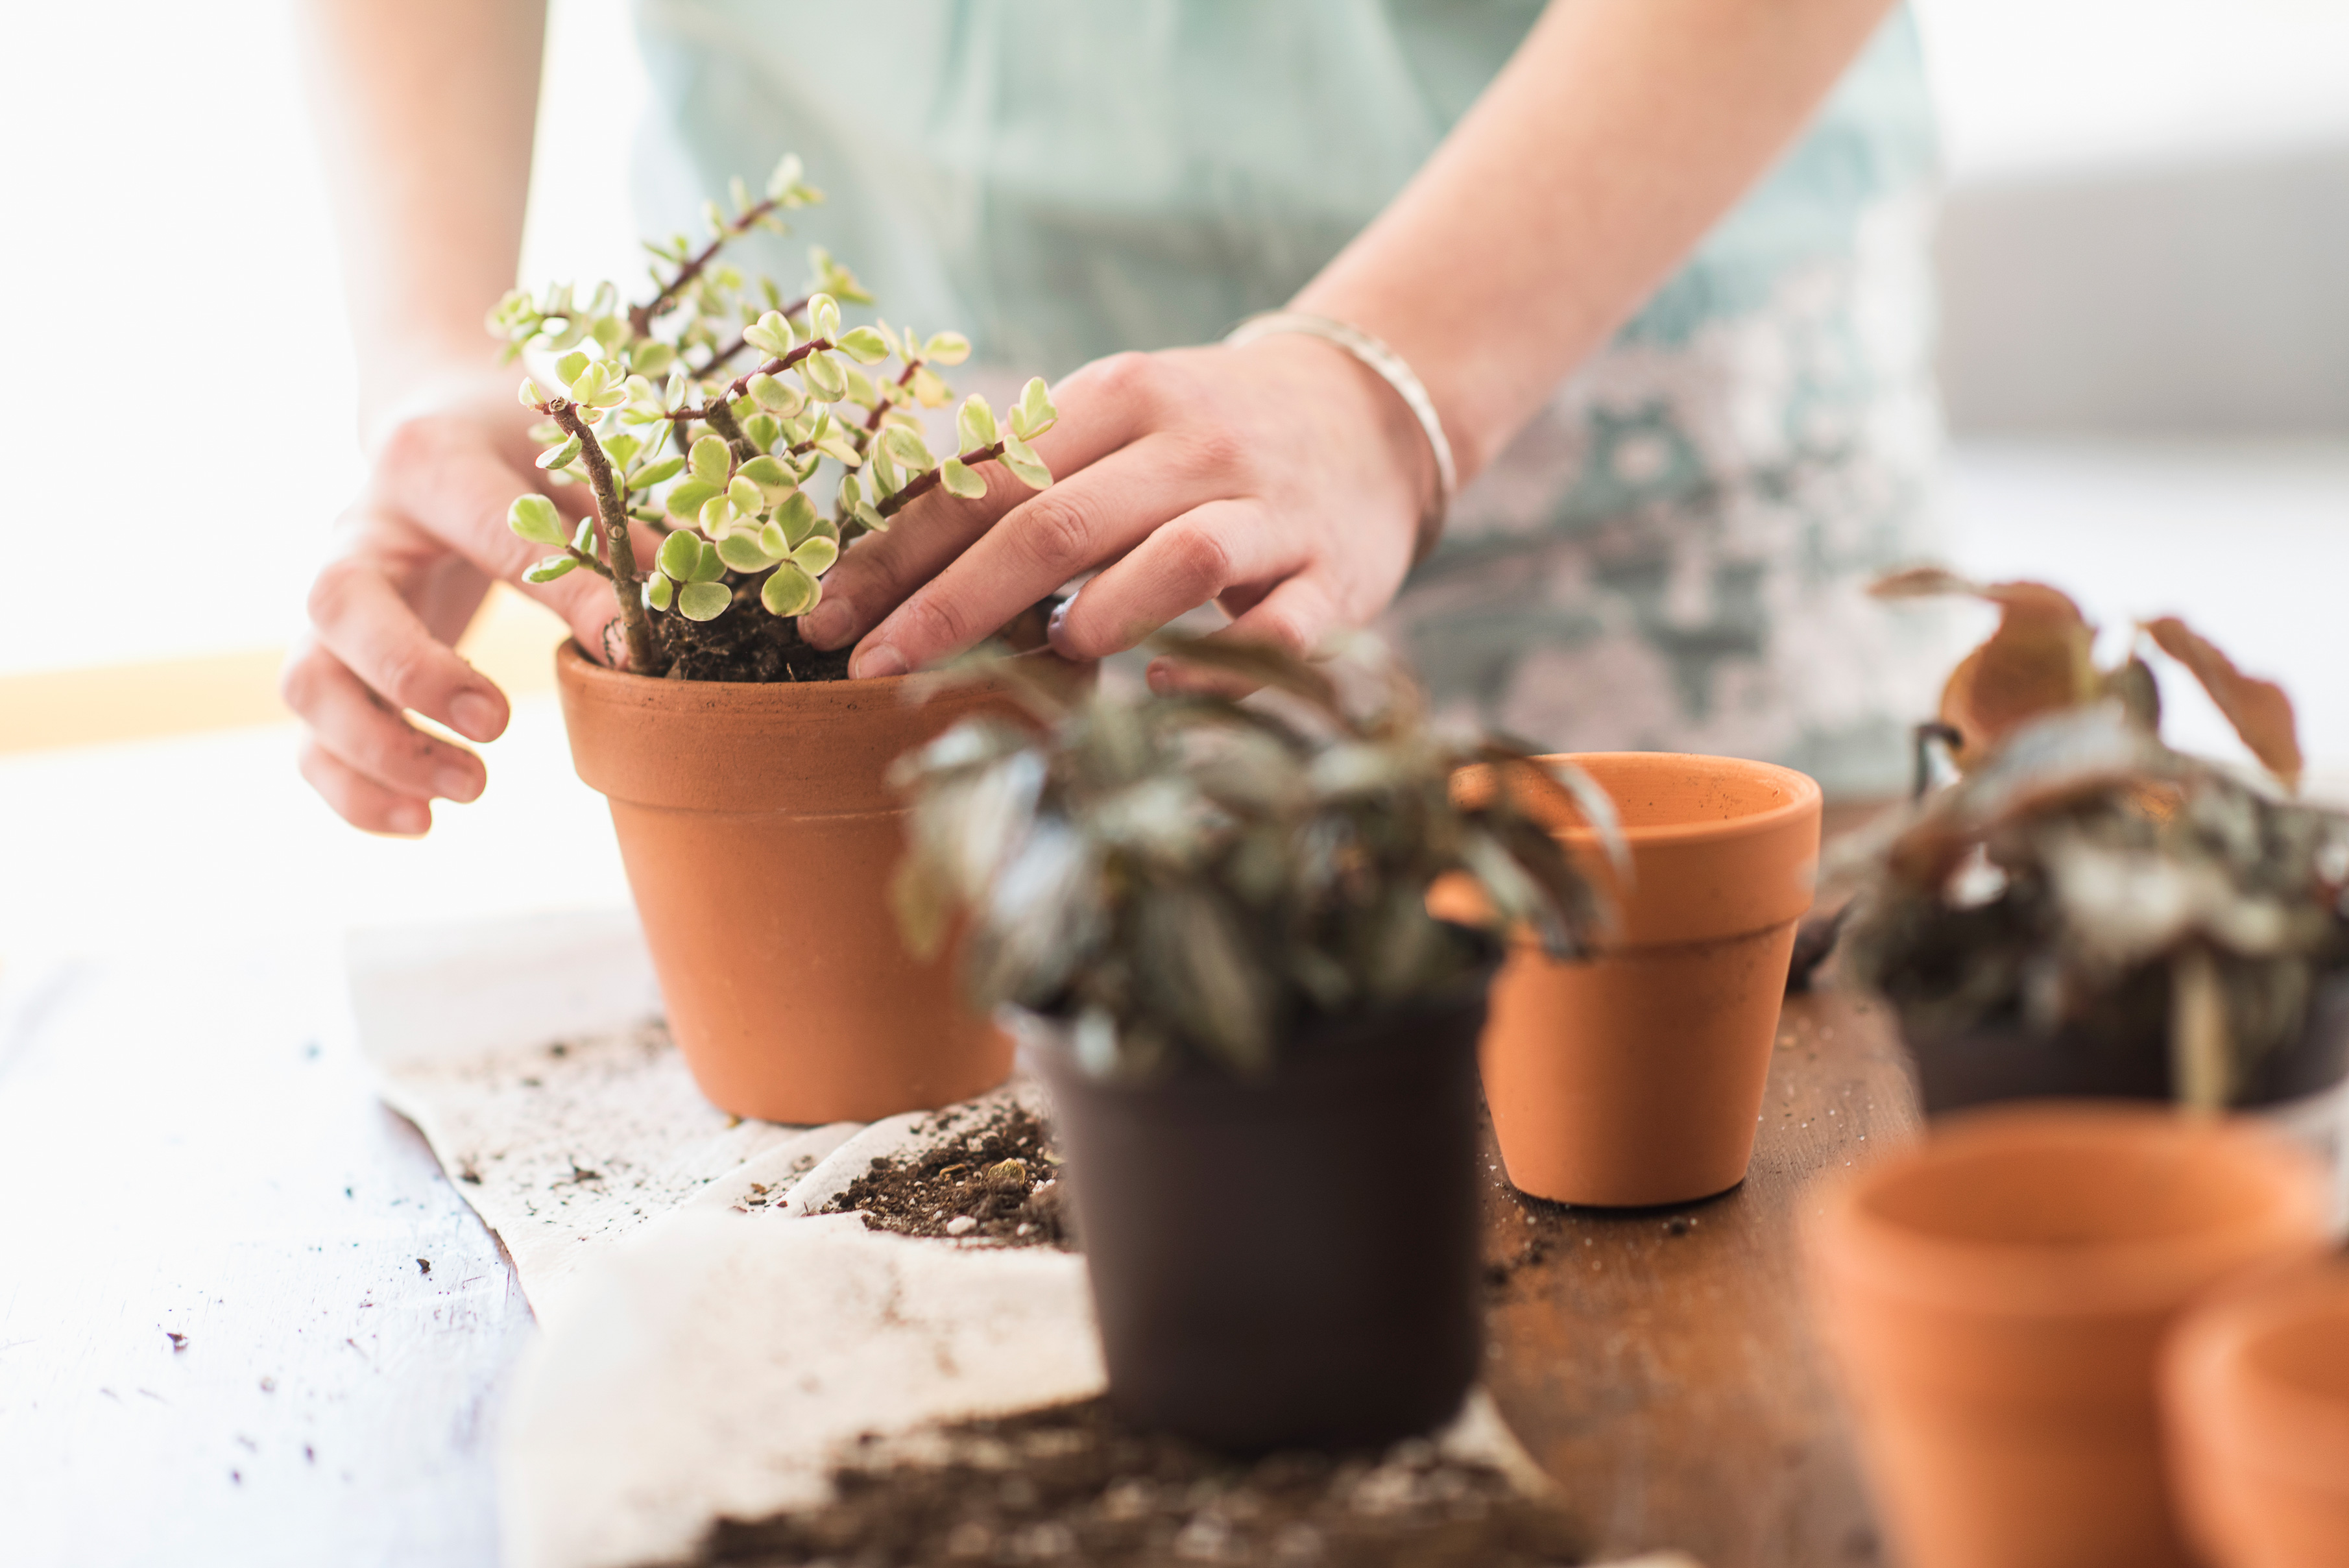 How Often Should You Change the Soil in Your Houseplants?